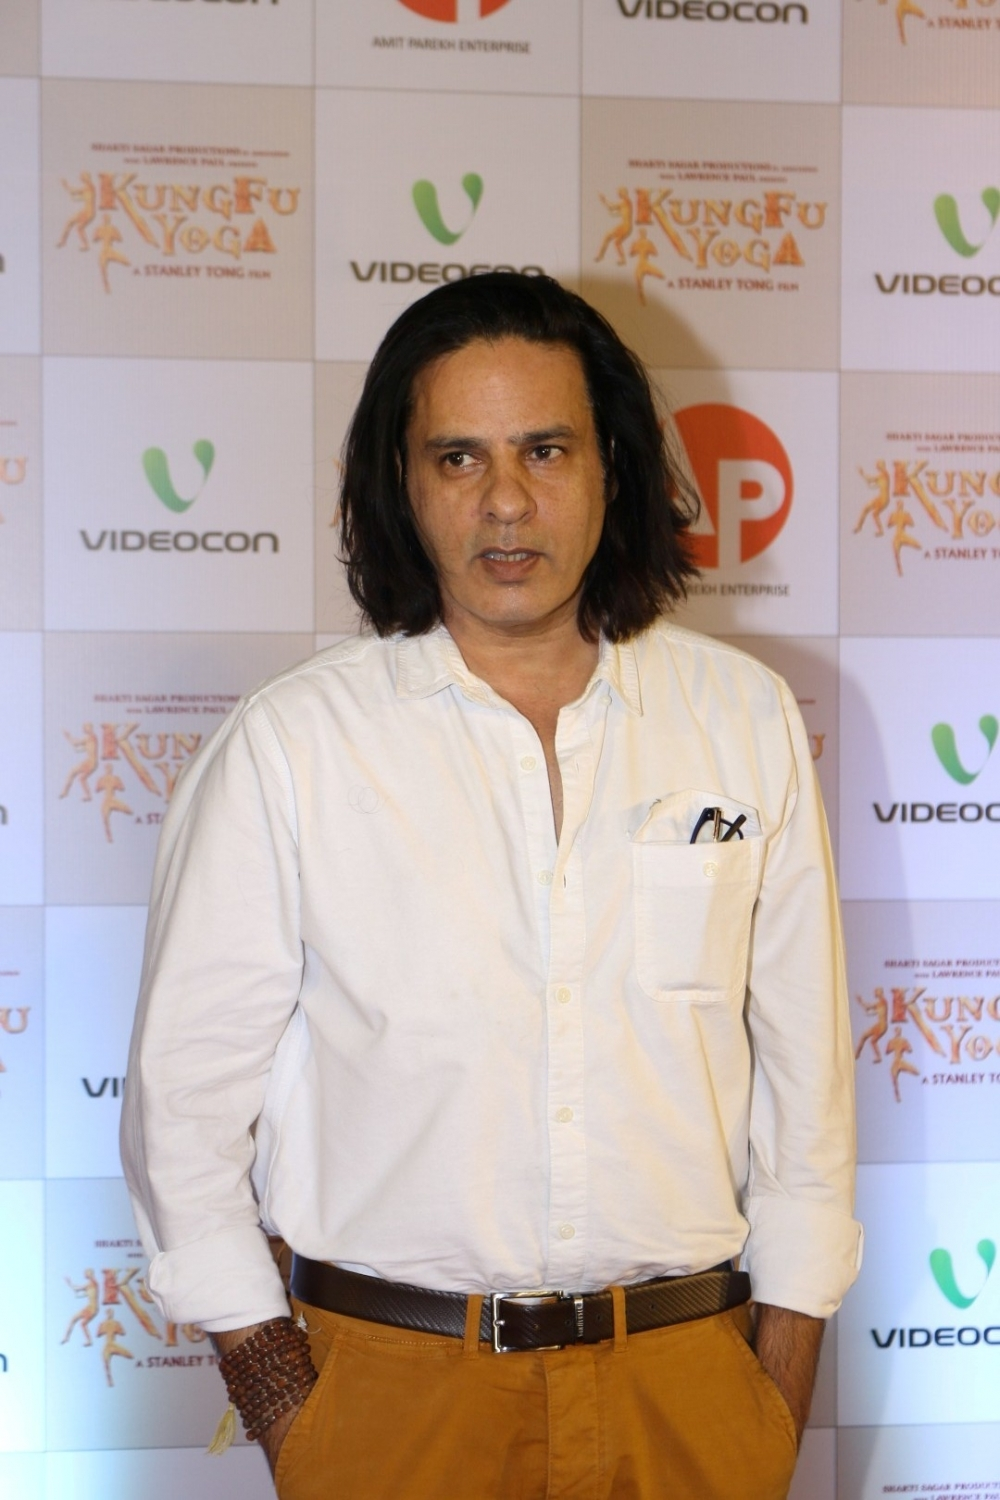 Mumbai: Actor Rahul Roy during the screening of film Kung Fu Yoga in Mumbai on Feb 2, 2017. (Photo: IANS)